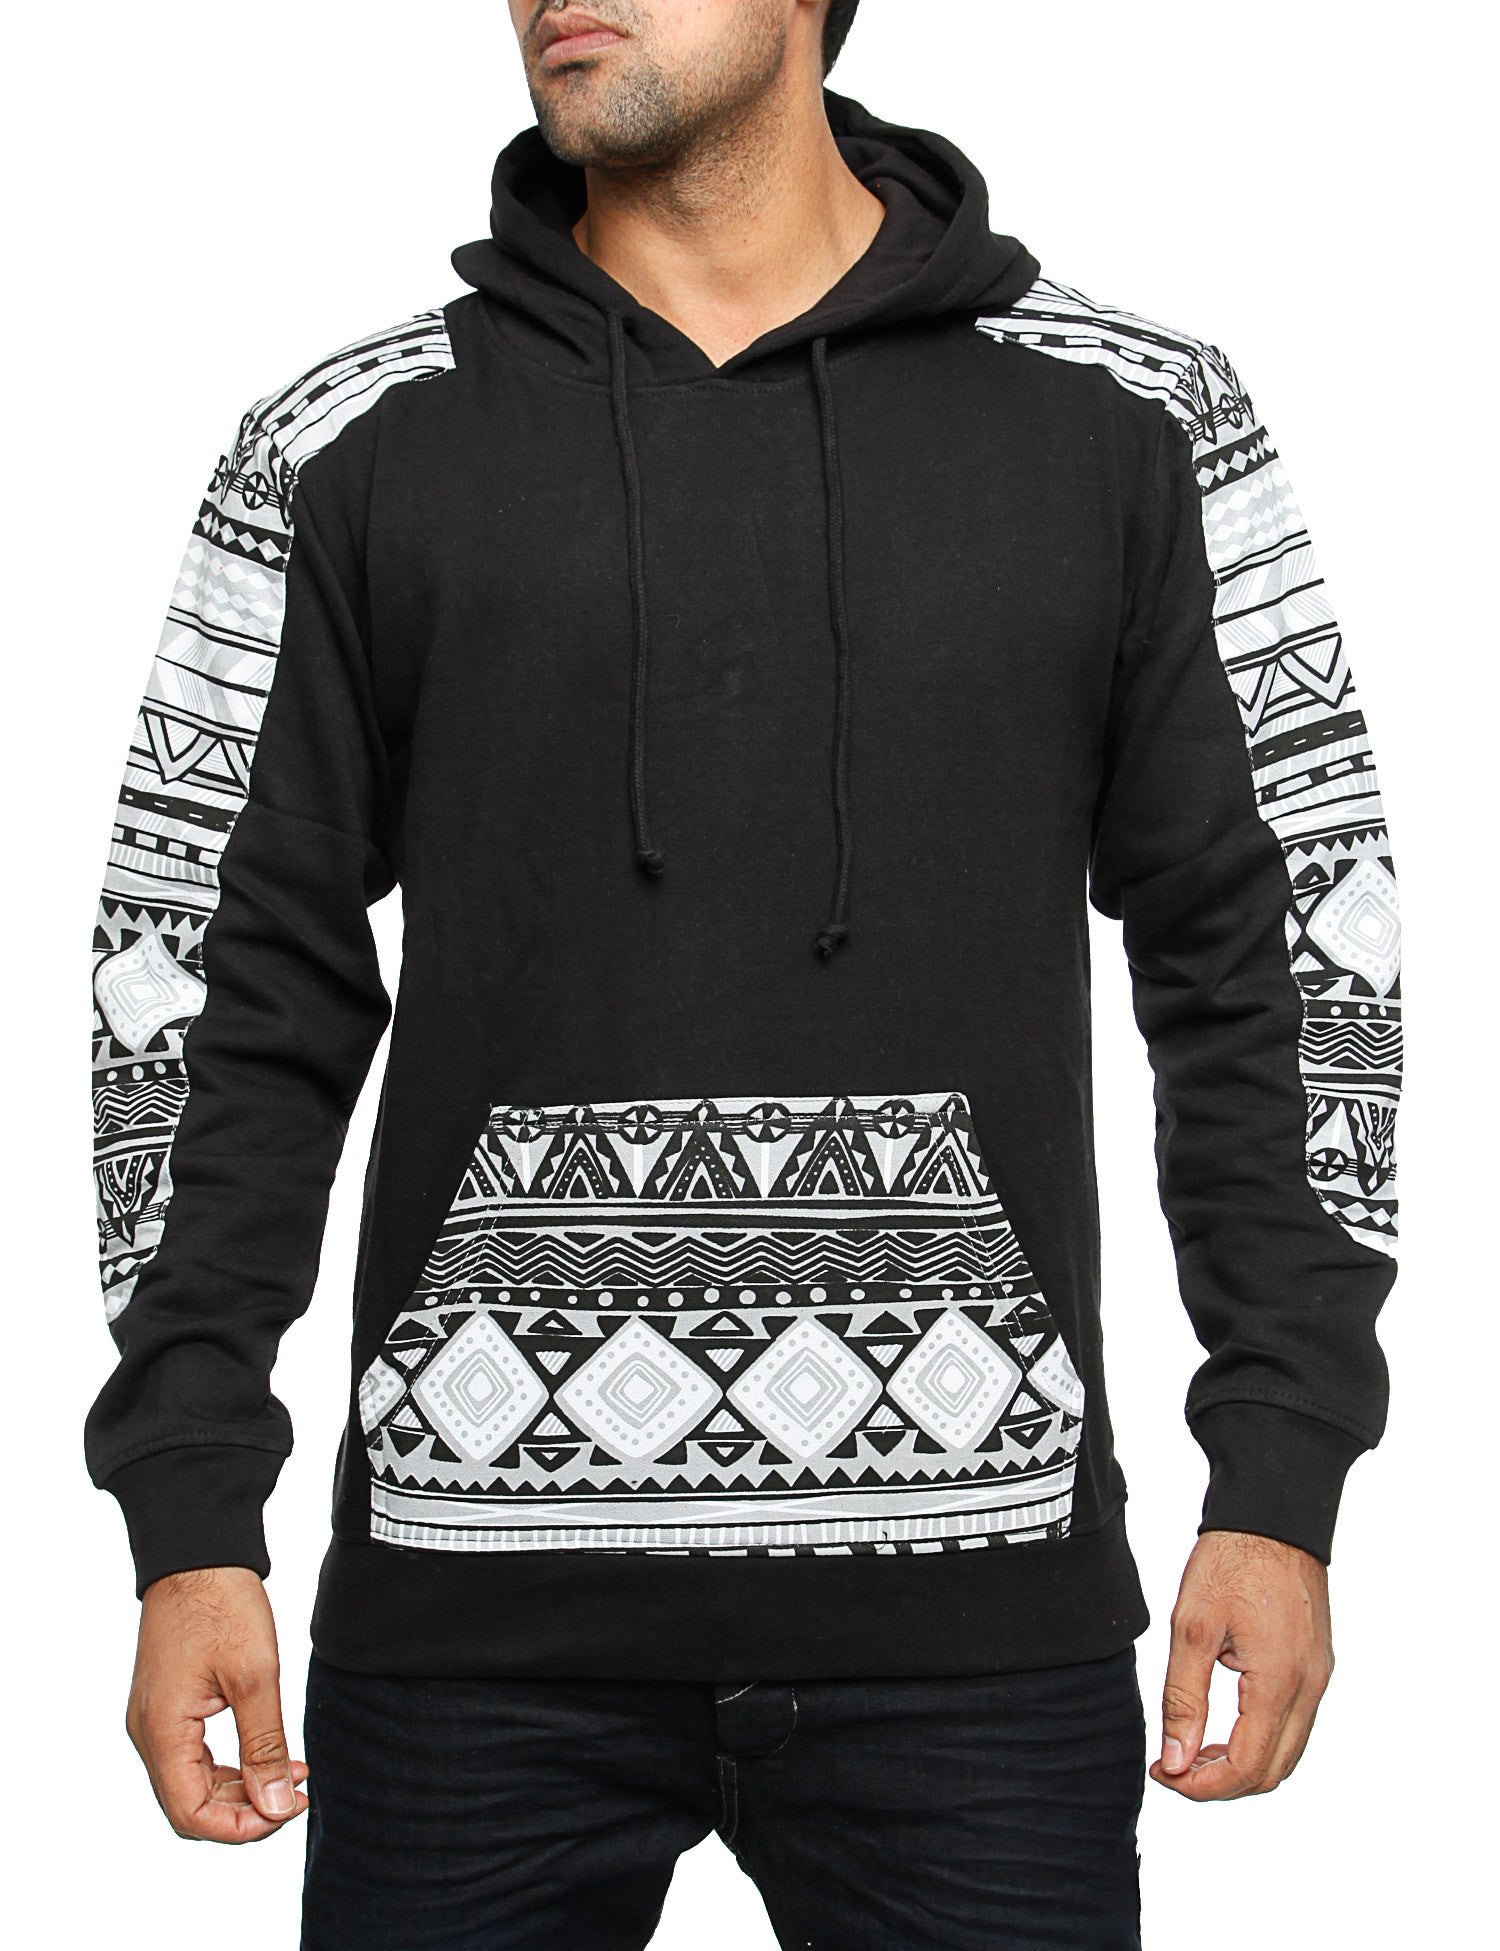 Imperious ´Aztec´ Hoody HS29 Black